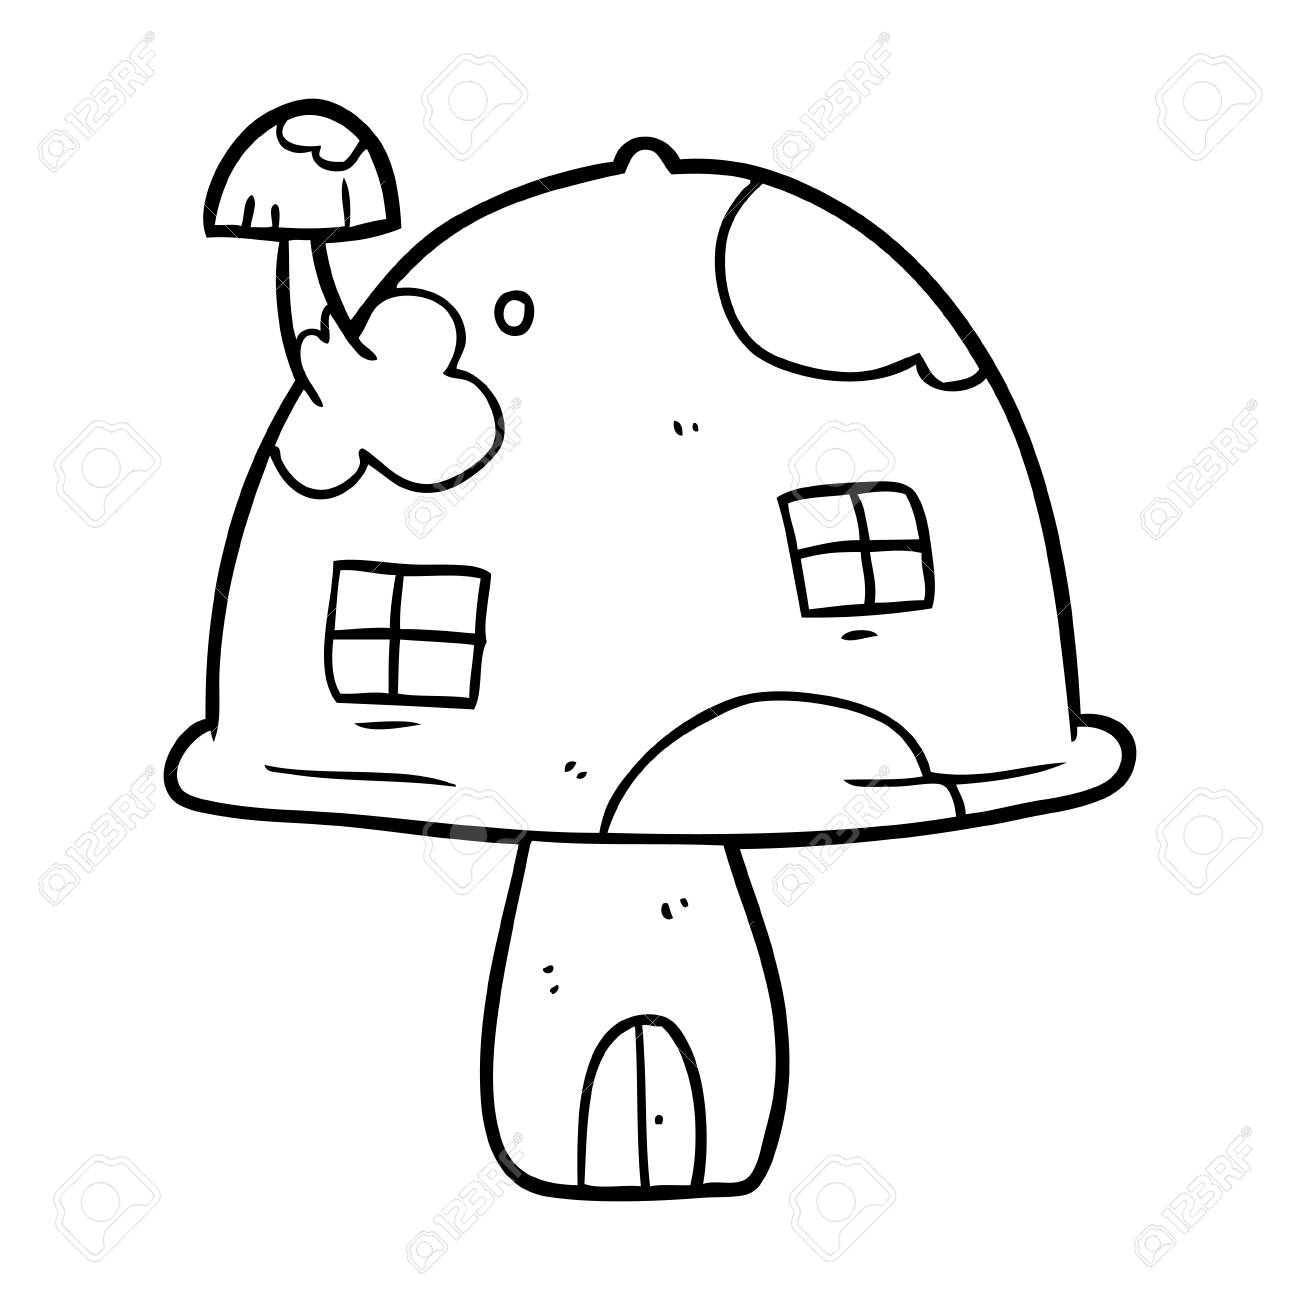 Line Drawing Of A Fairy Mushroom House Royalty Free Cliparts